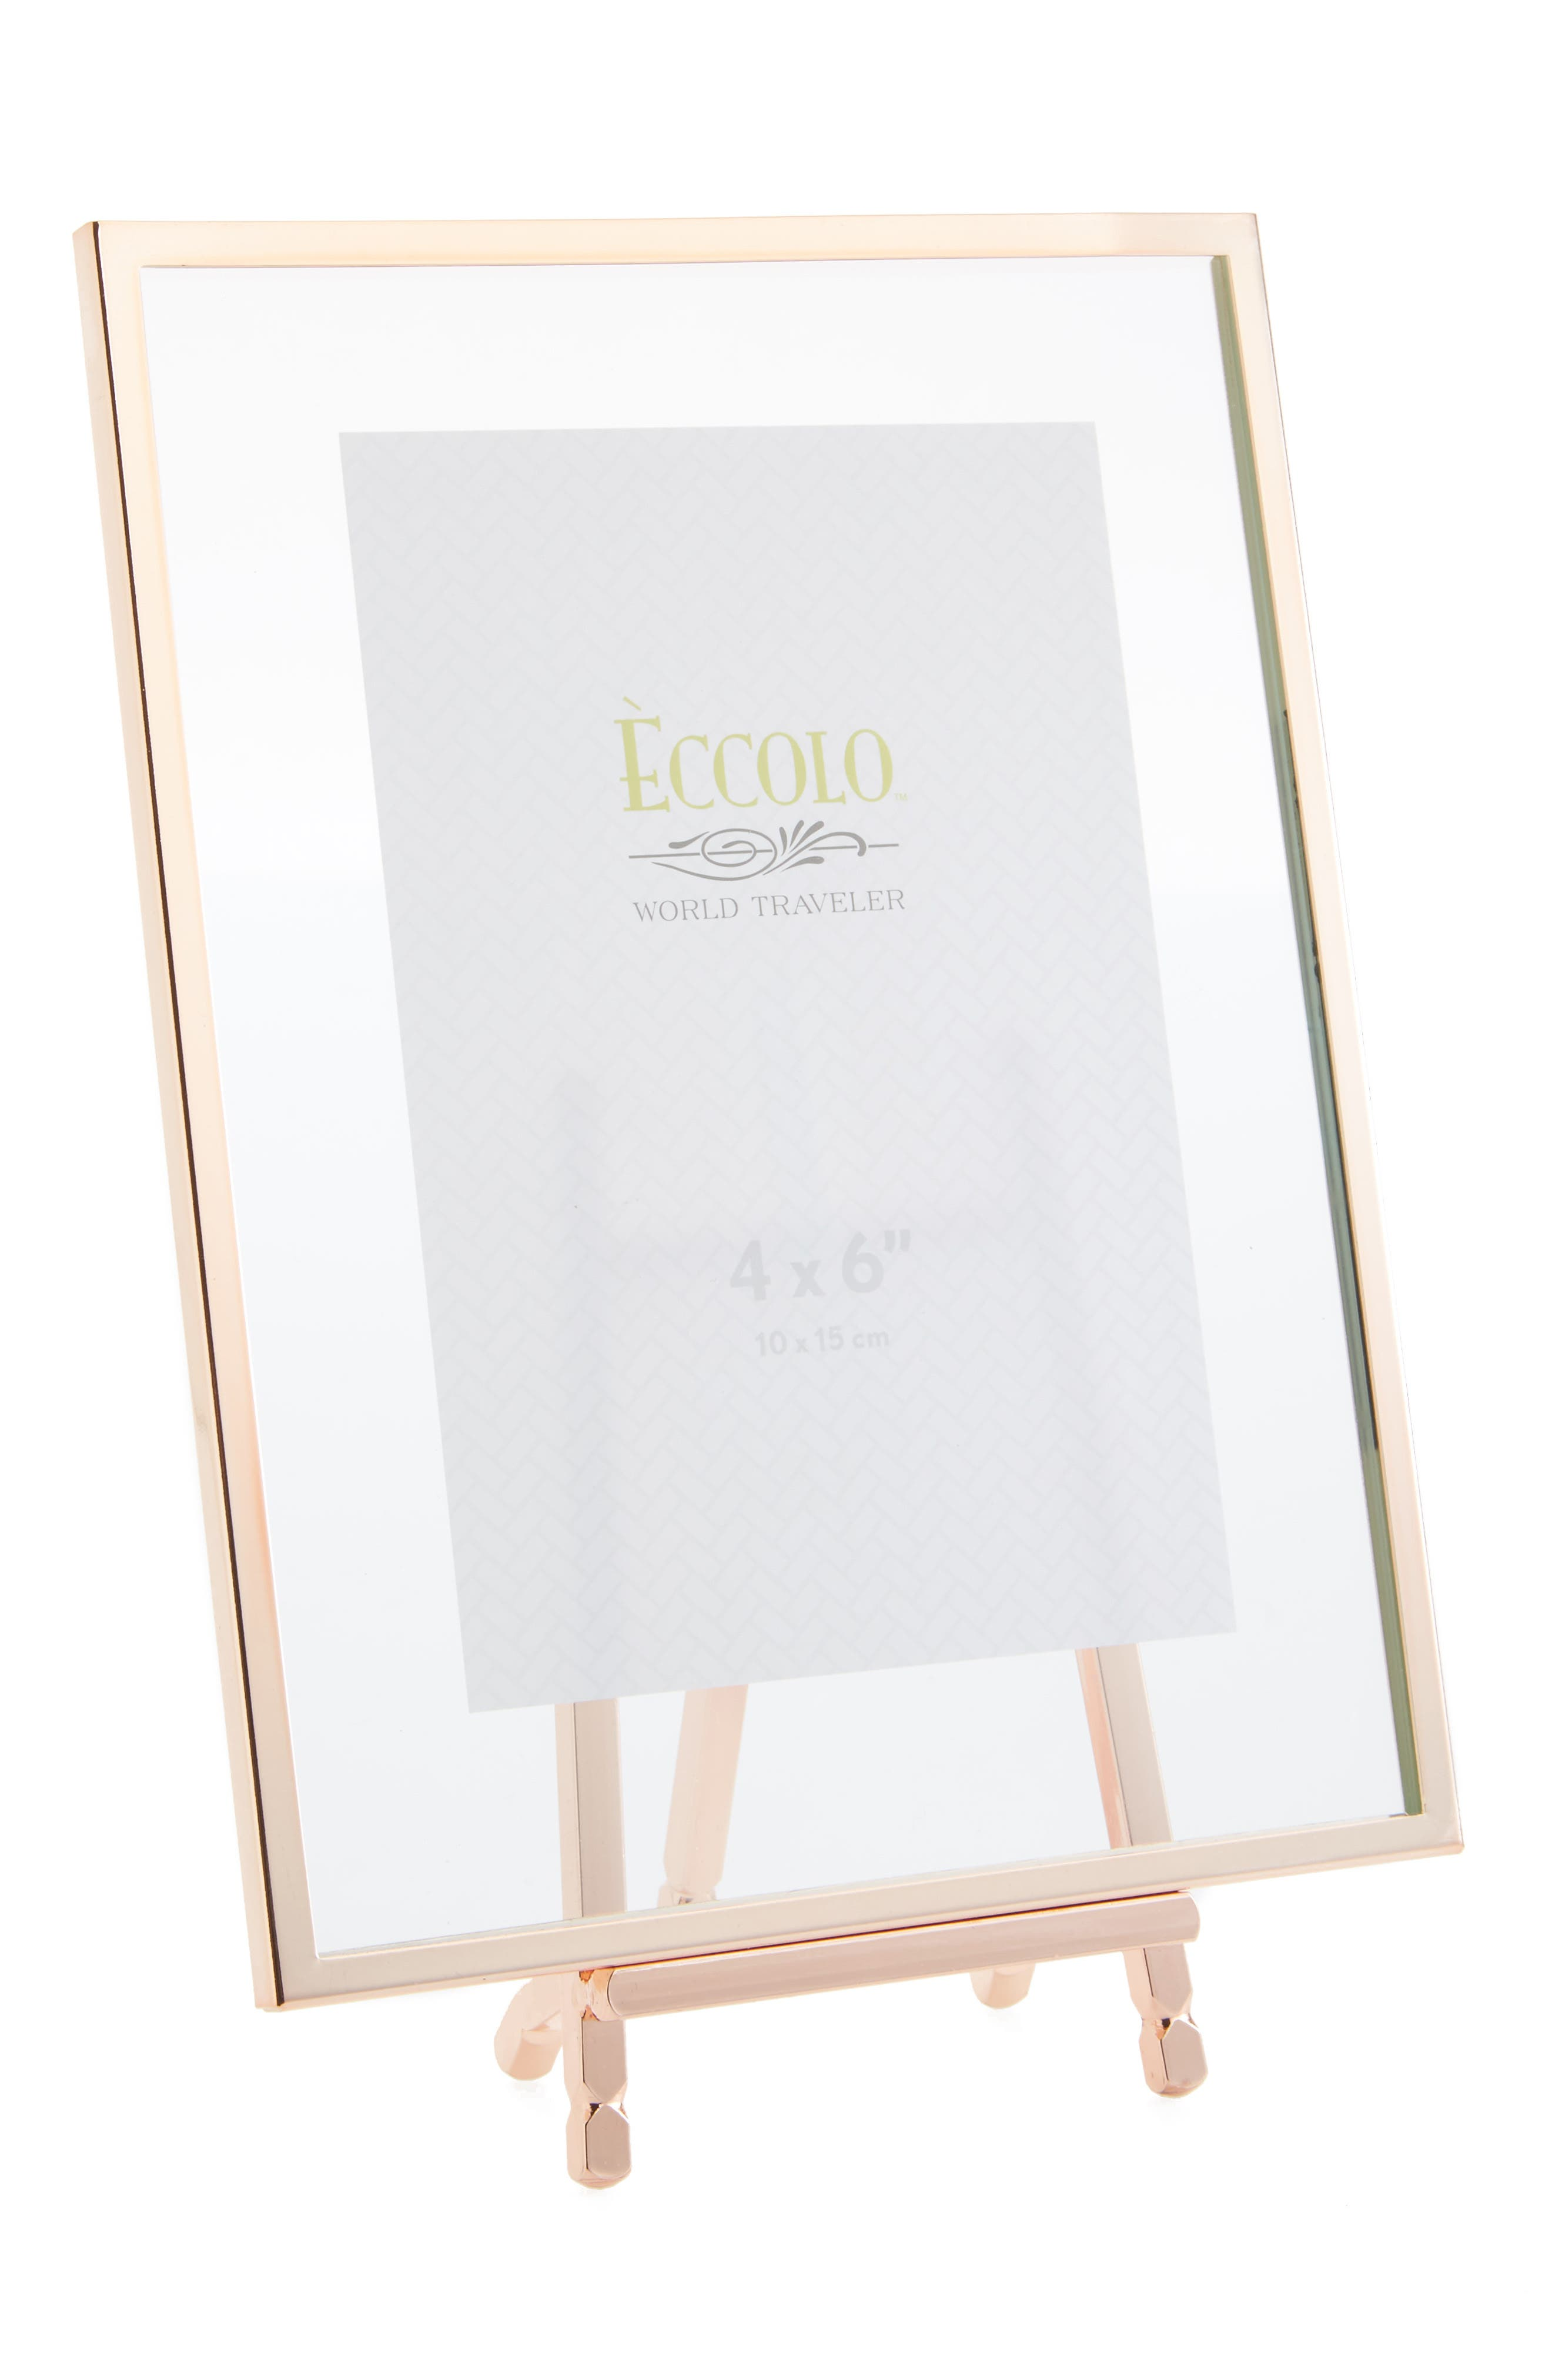 Main Image - Eccolo Copper Easel Picture Frame